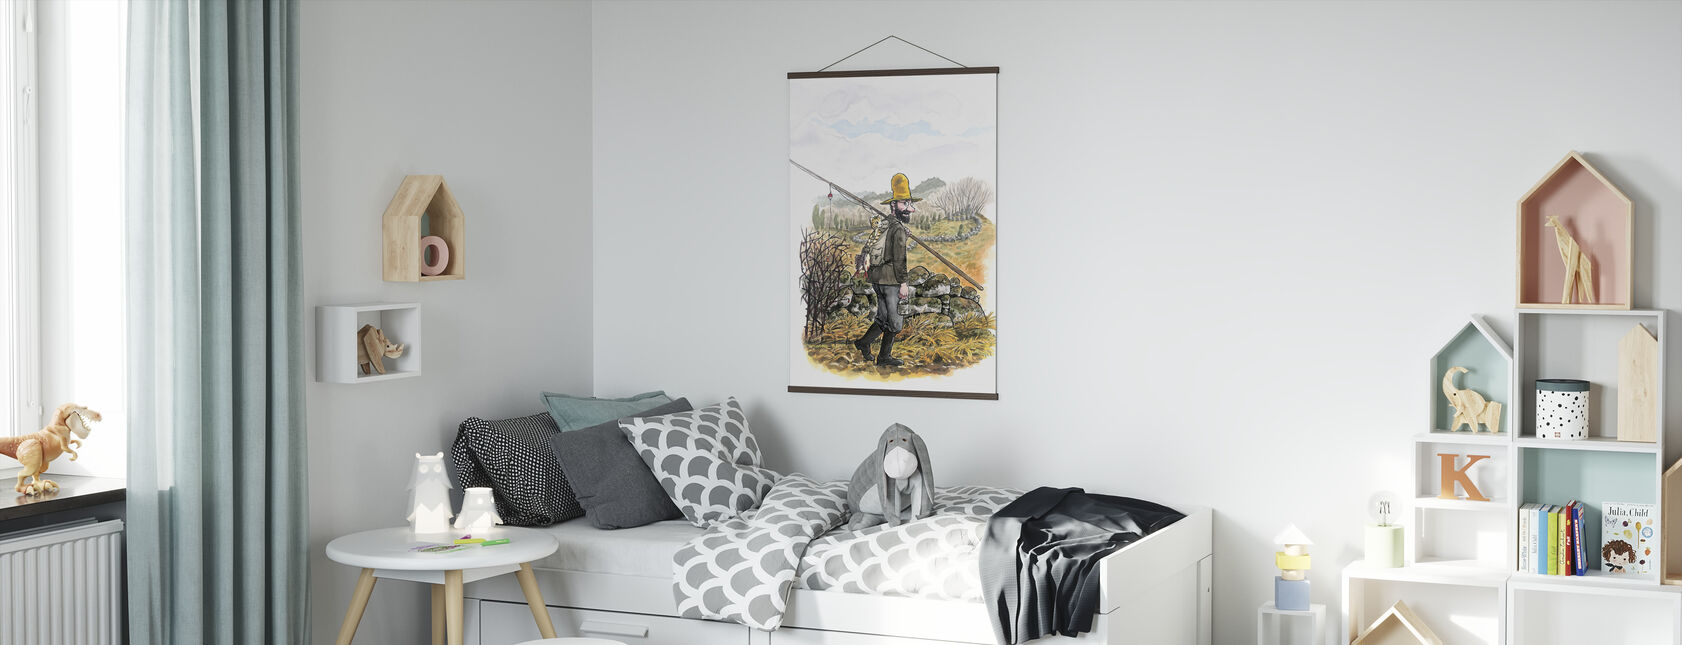 Pettson and Findus -Poor Pettson - Poster - Kids Room